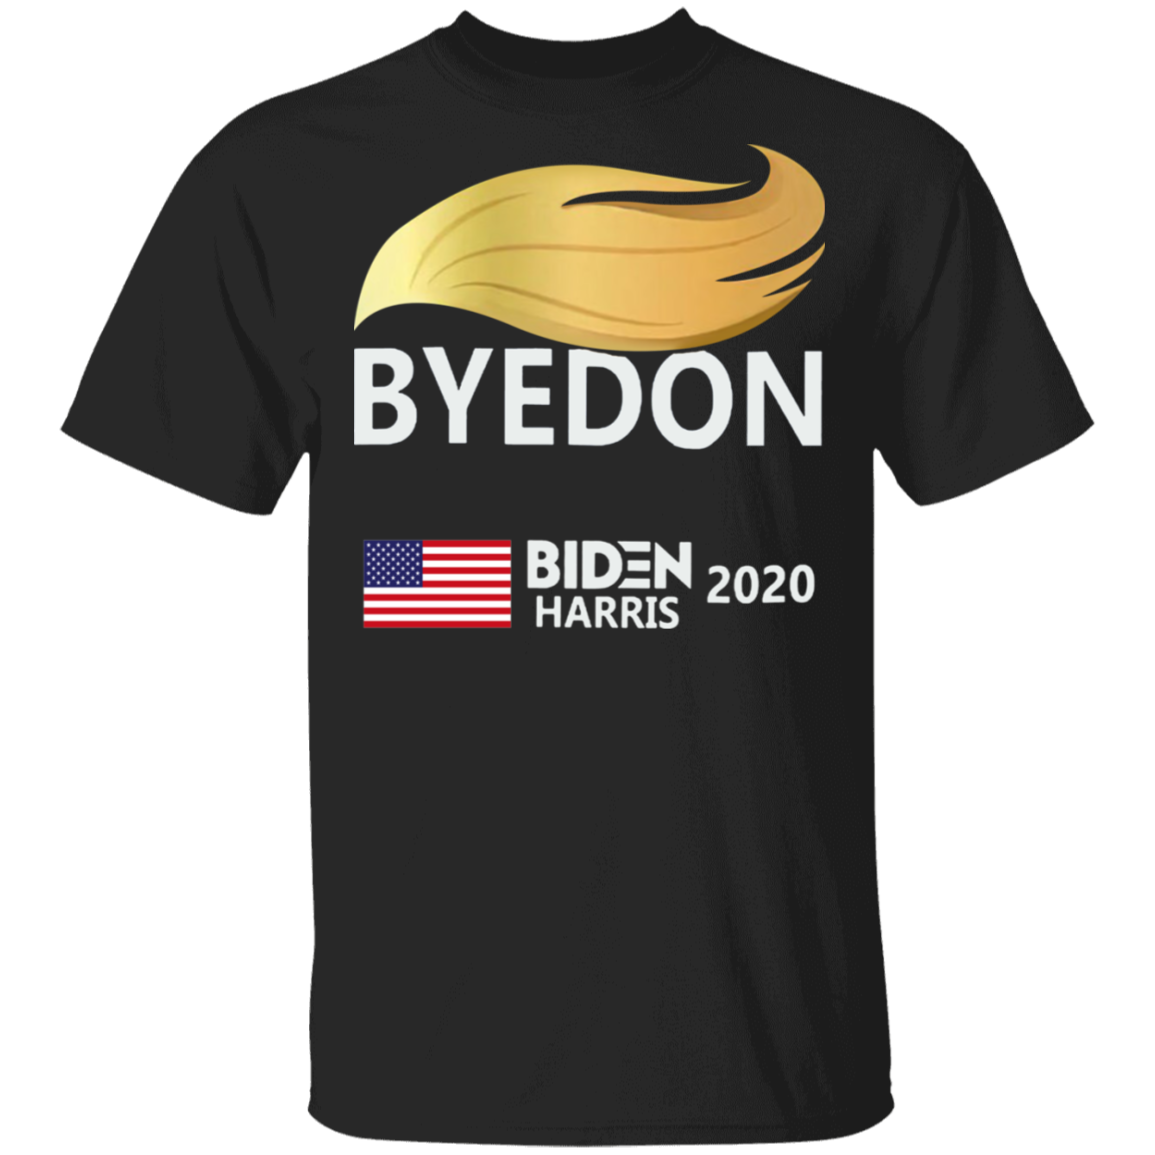 ByeDon With Hair Biden Harris T-Shirt Biden For President Campaign Merch Anti Trump Shirt